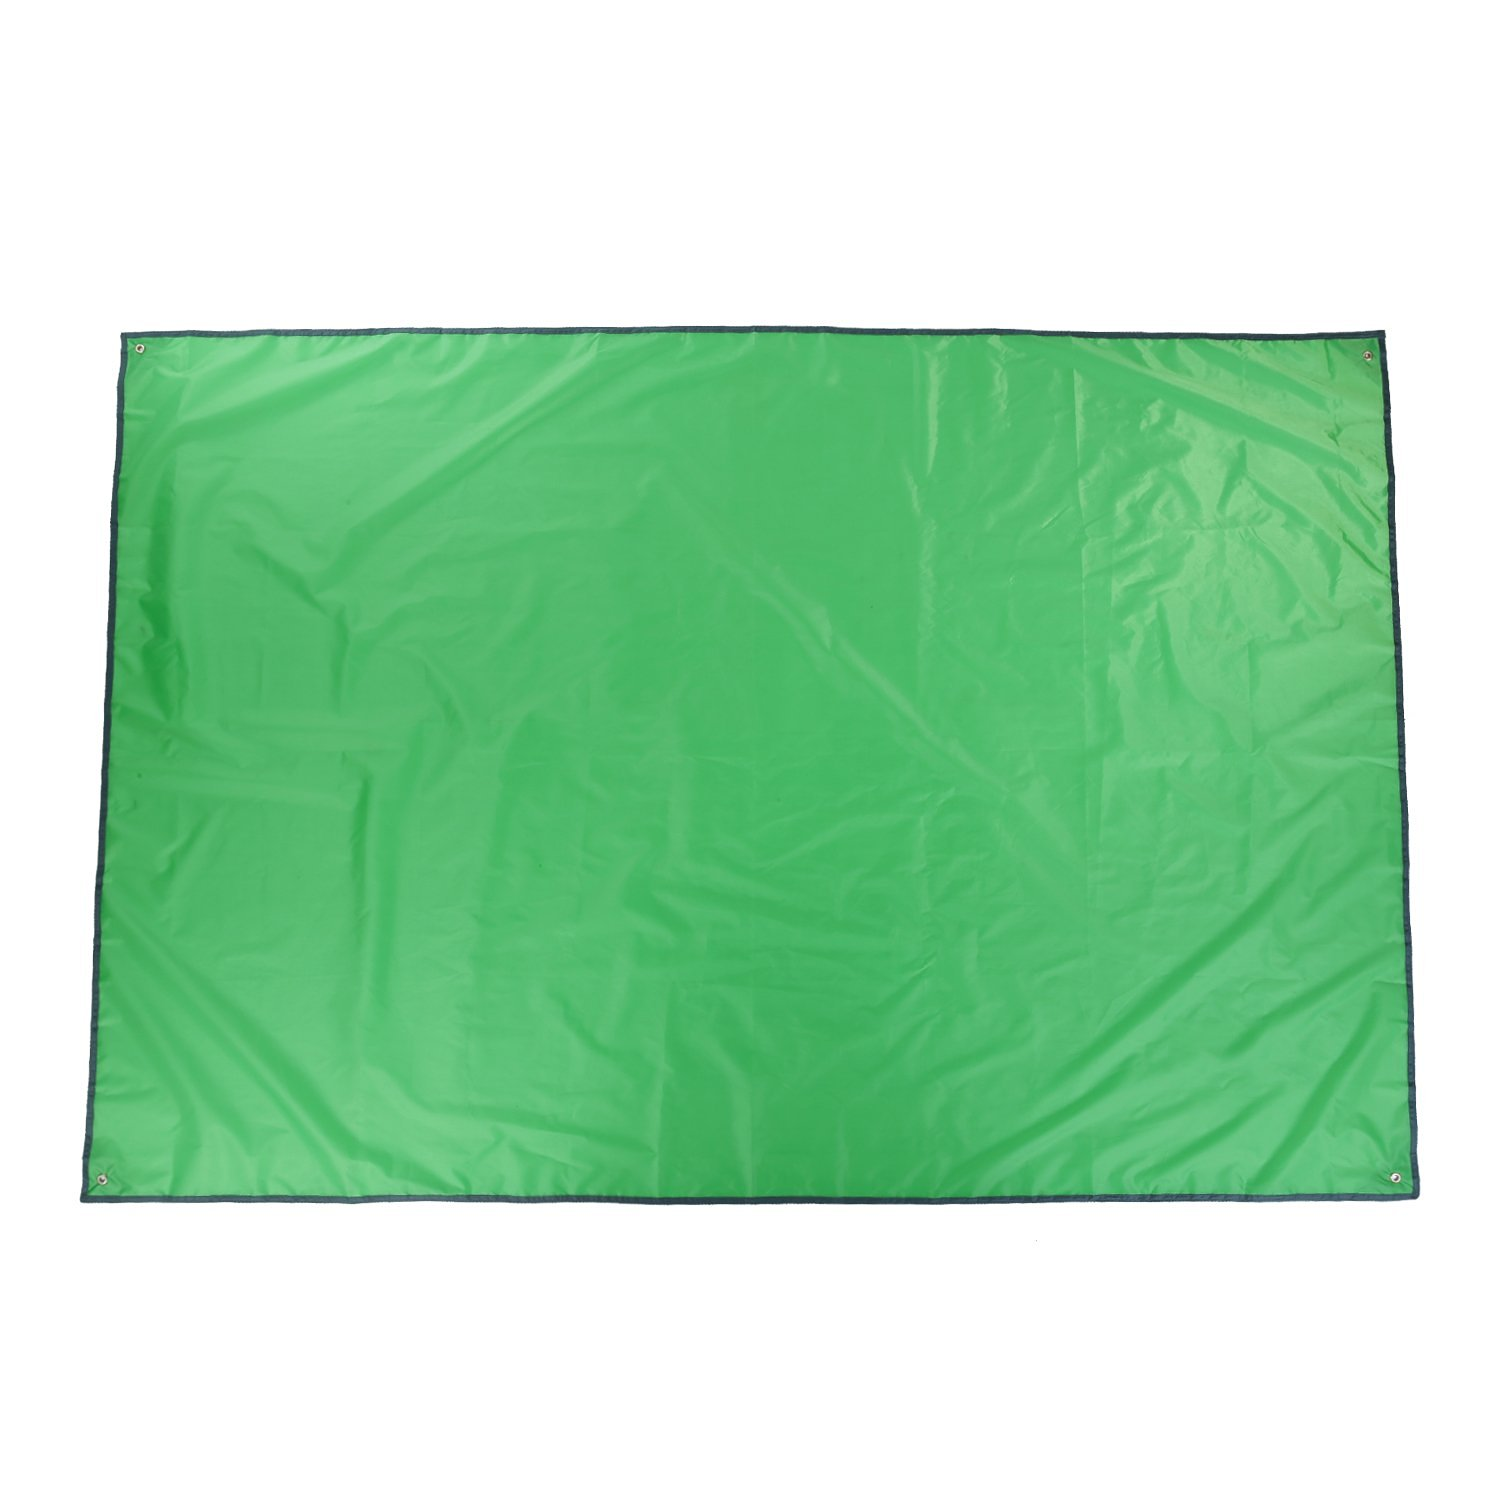 OUTAD Waterproof Camping Tarp for Picnics, Tent Footprint, and Sunshade